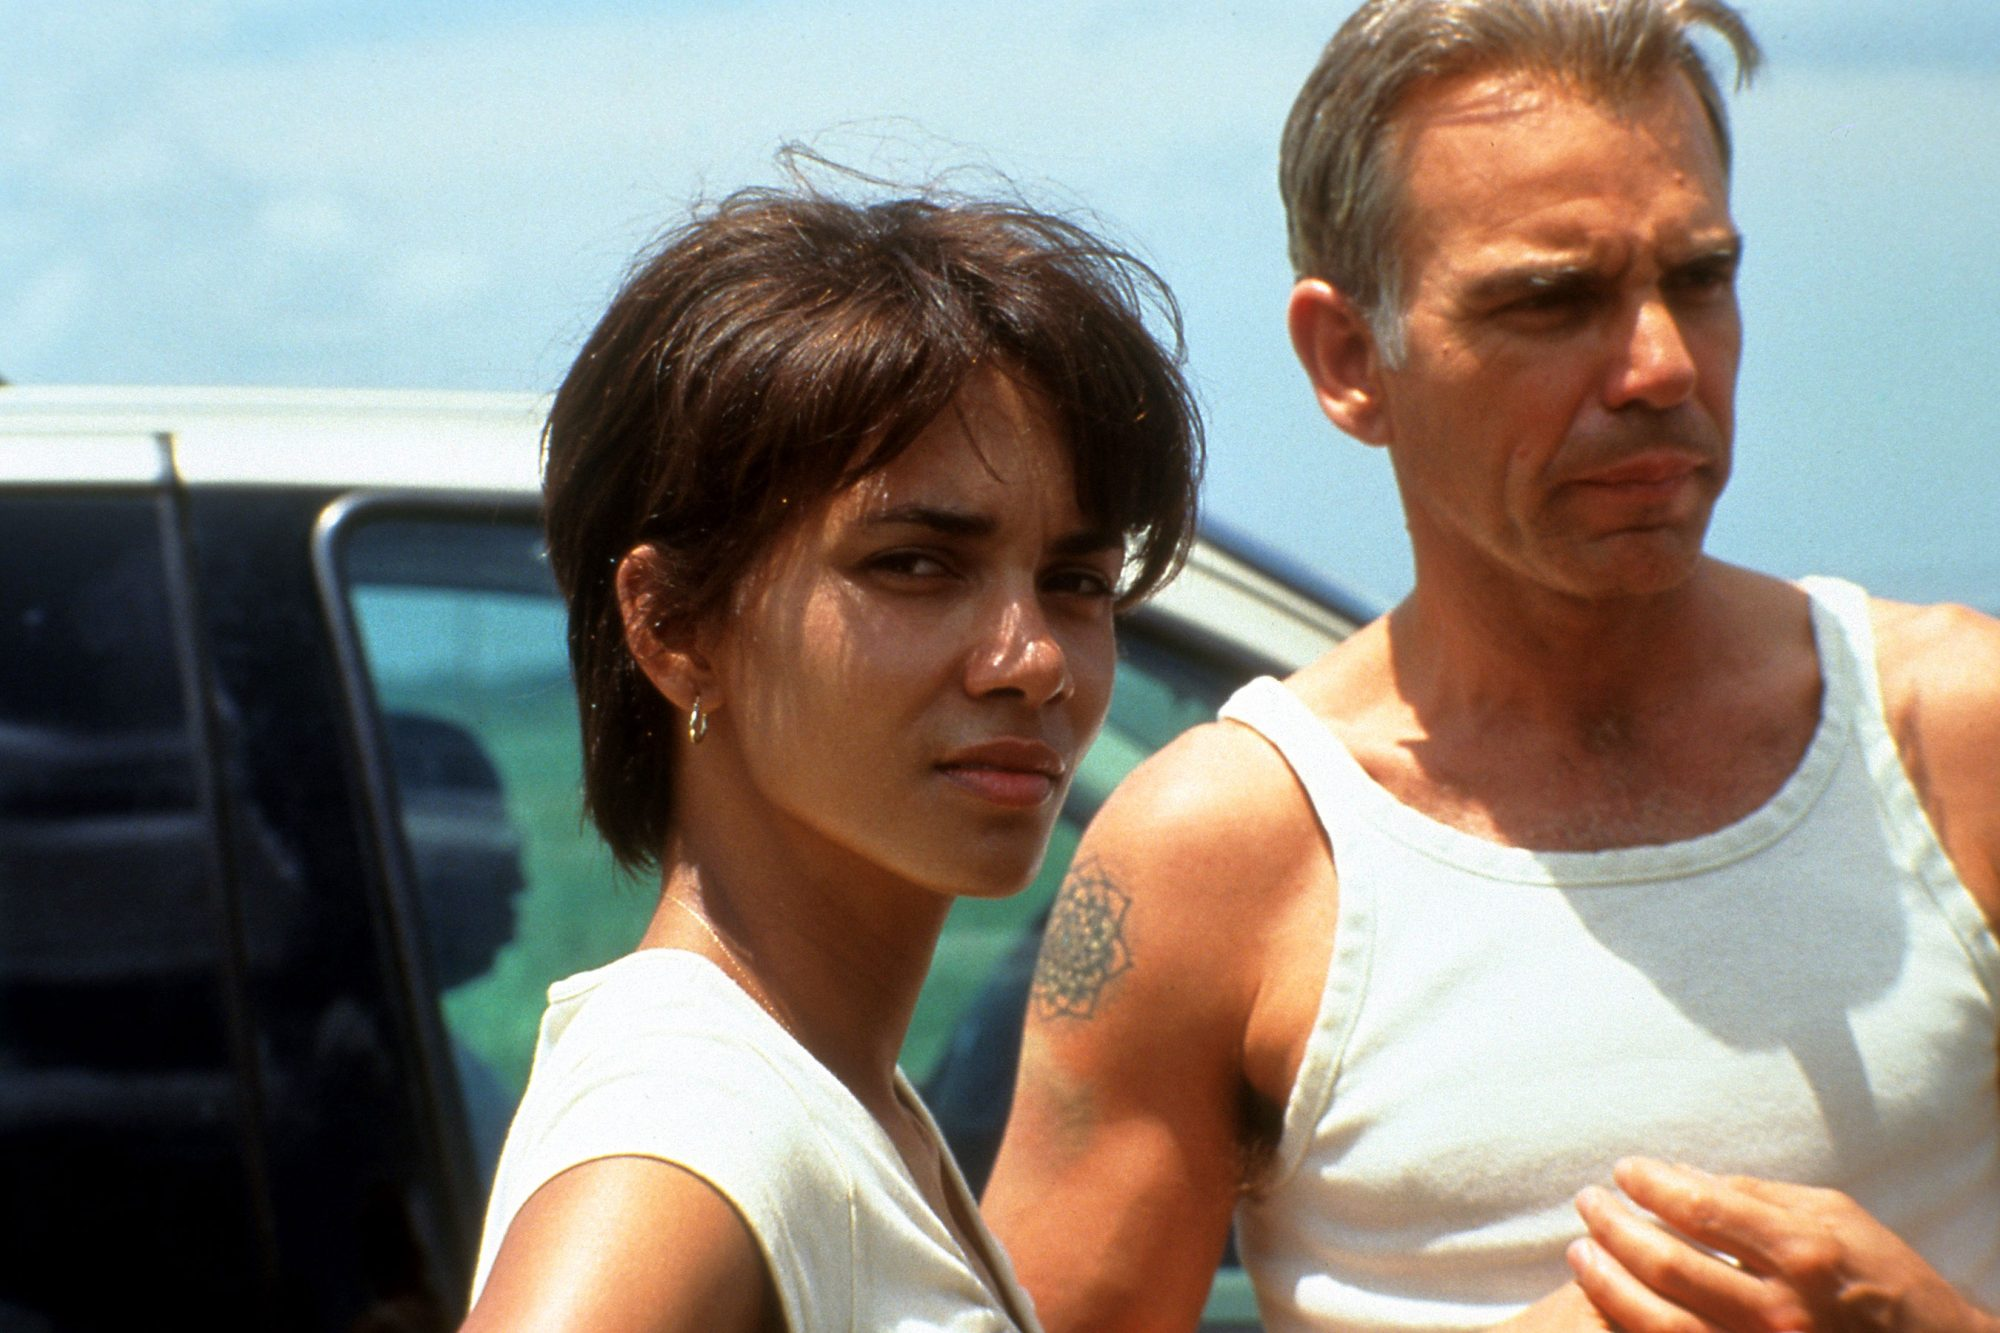 Halle Berry And Billy Bob Thornton In 'Monster's Ball'